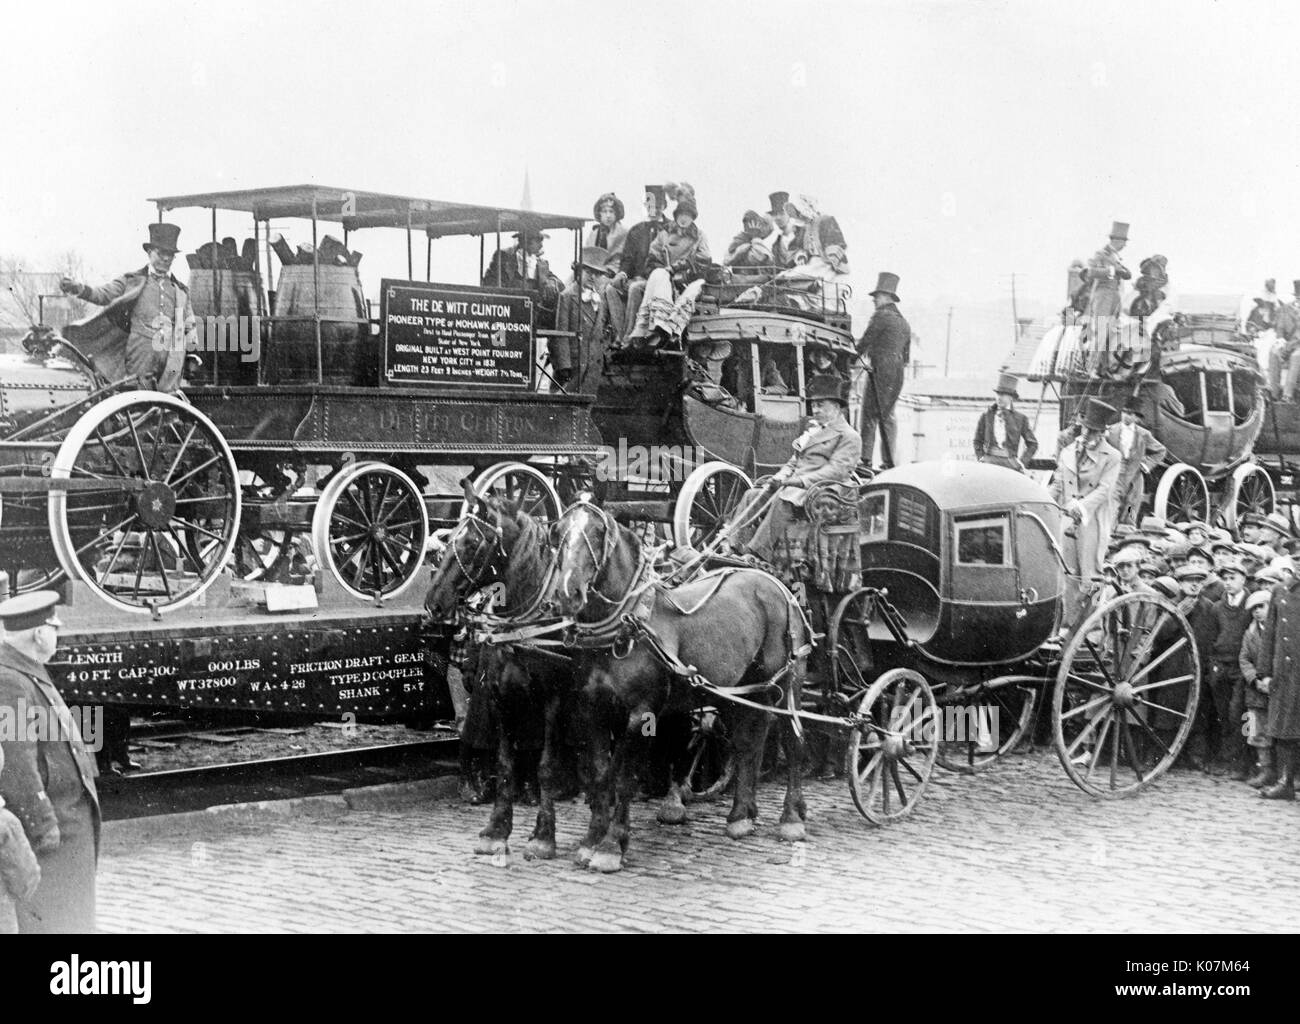 Horse drawn carriage and train. The De Witt Clinton, pioneer type of Mohawk & Hudson, first to haul passenger train in state of New York ... ' on train in America.     Date: circa 1920 - Stock Image